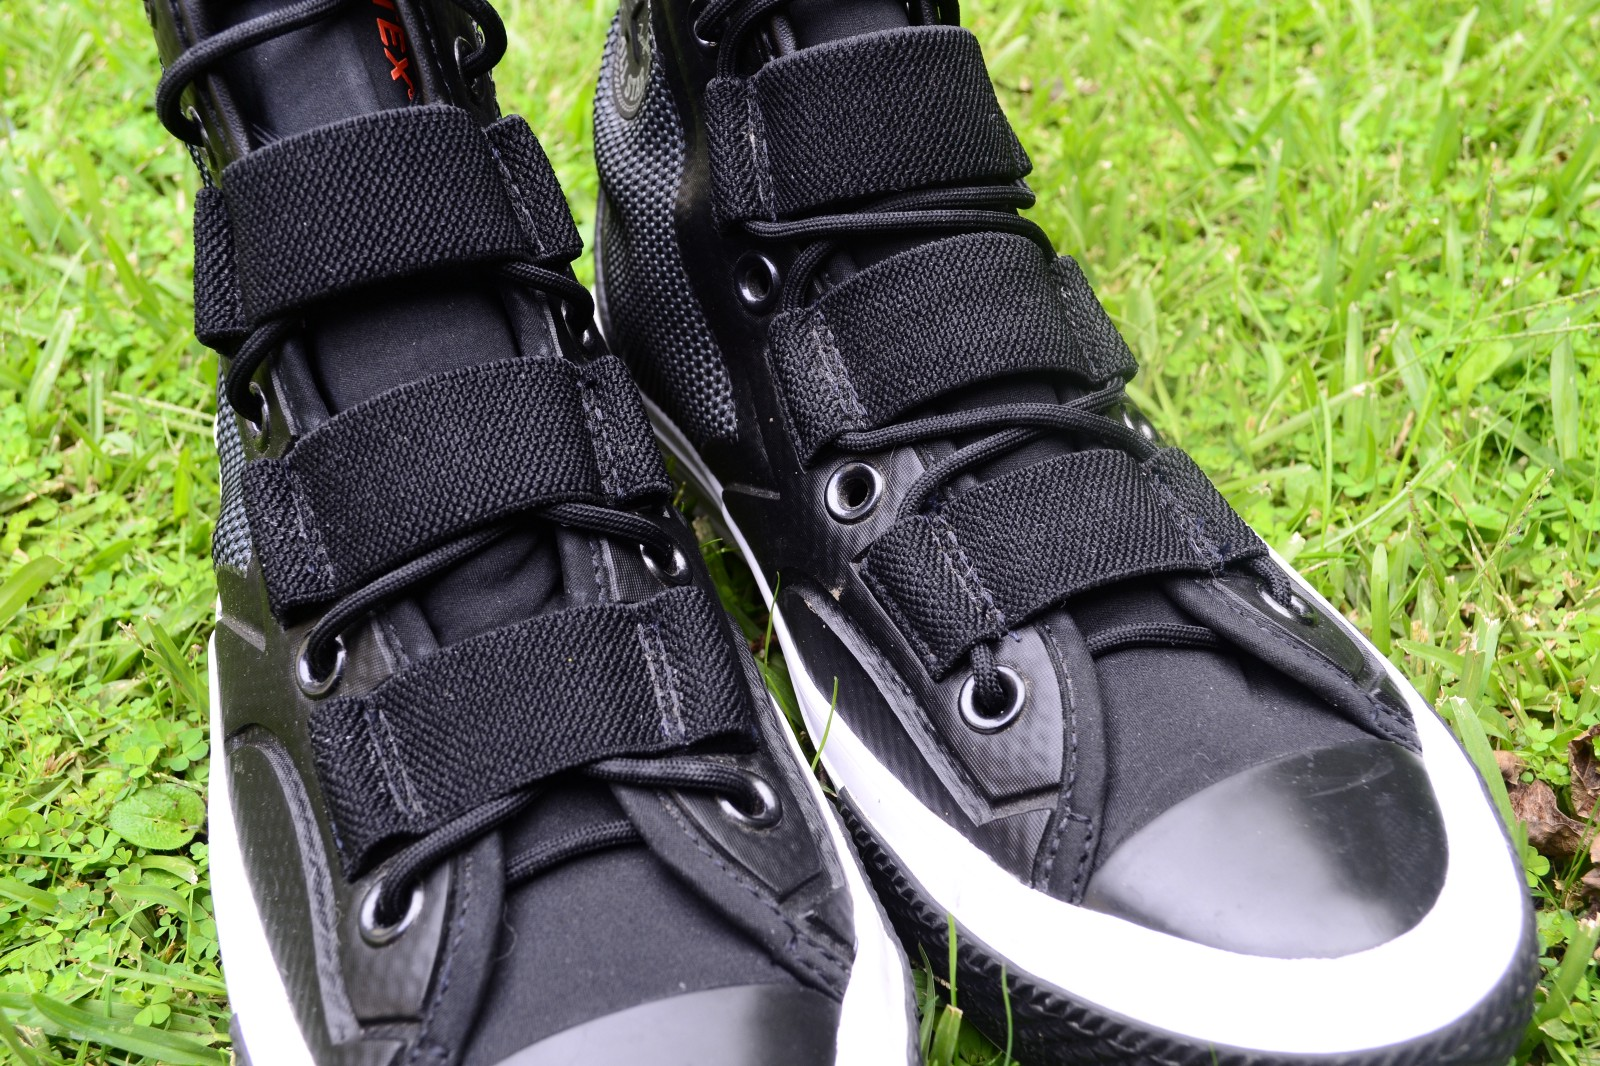 387e0b56c1e7 Pictured  Conventional lacing style vs. laces through bands lacing style.